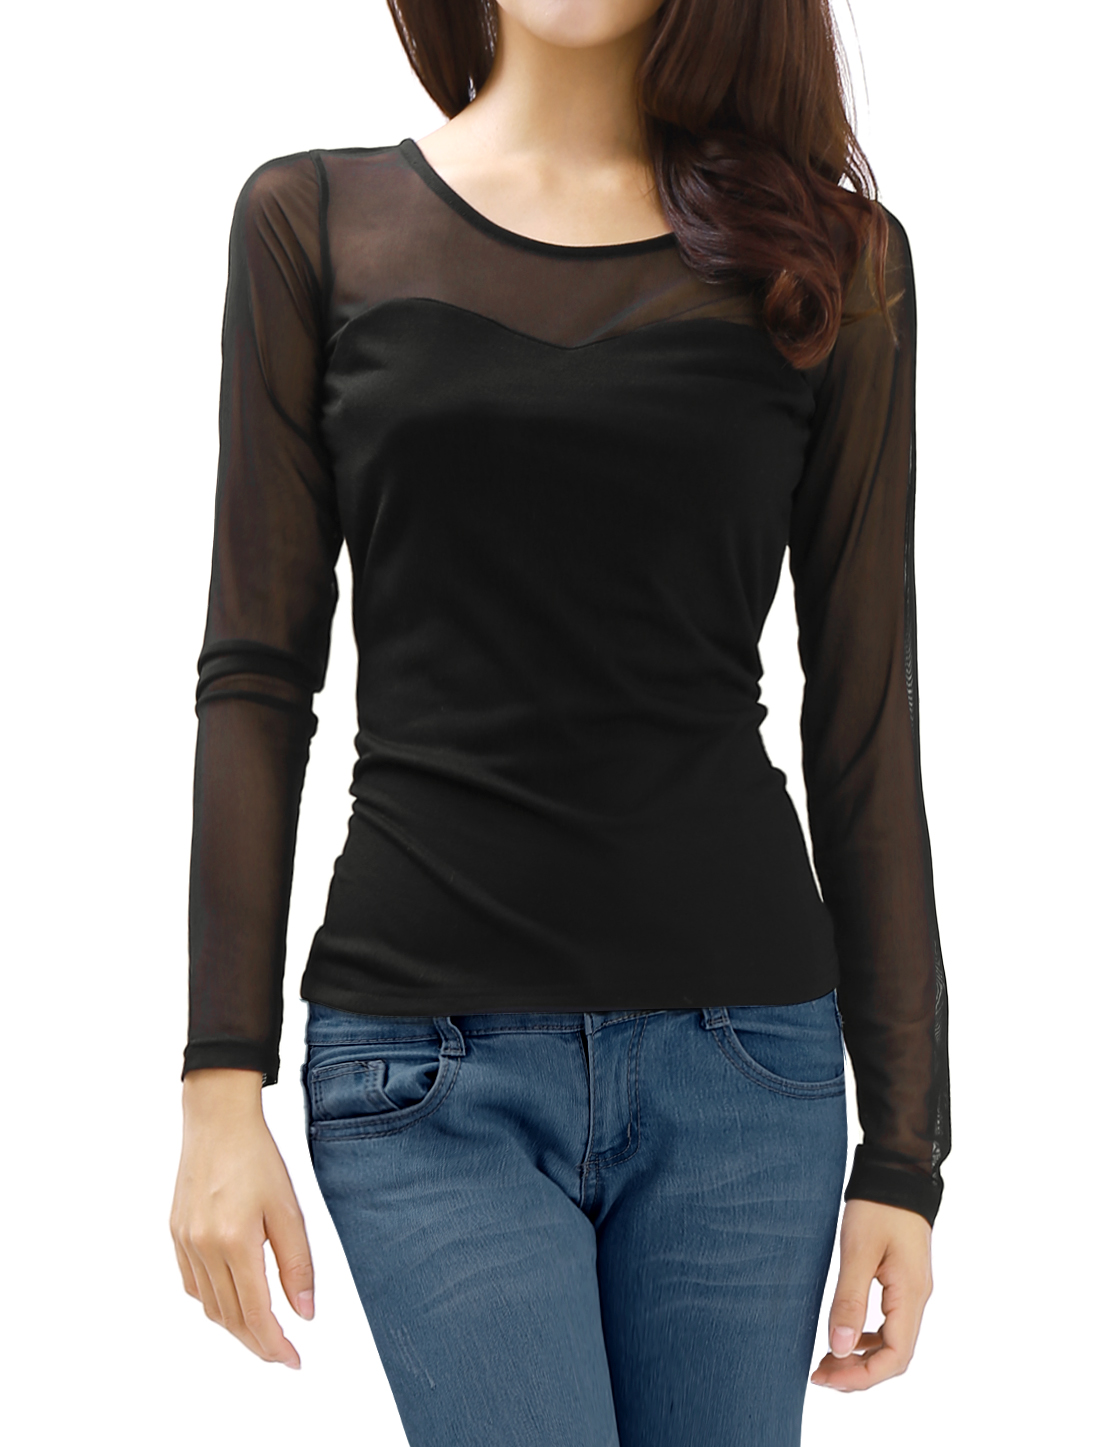 Lady Black Long Sleeve Mesh Panel Form-fitting Casual Top Shirt L